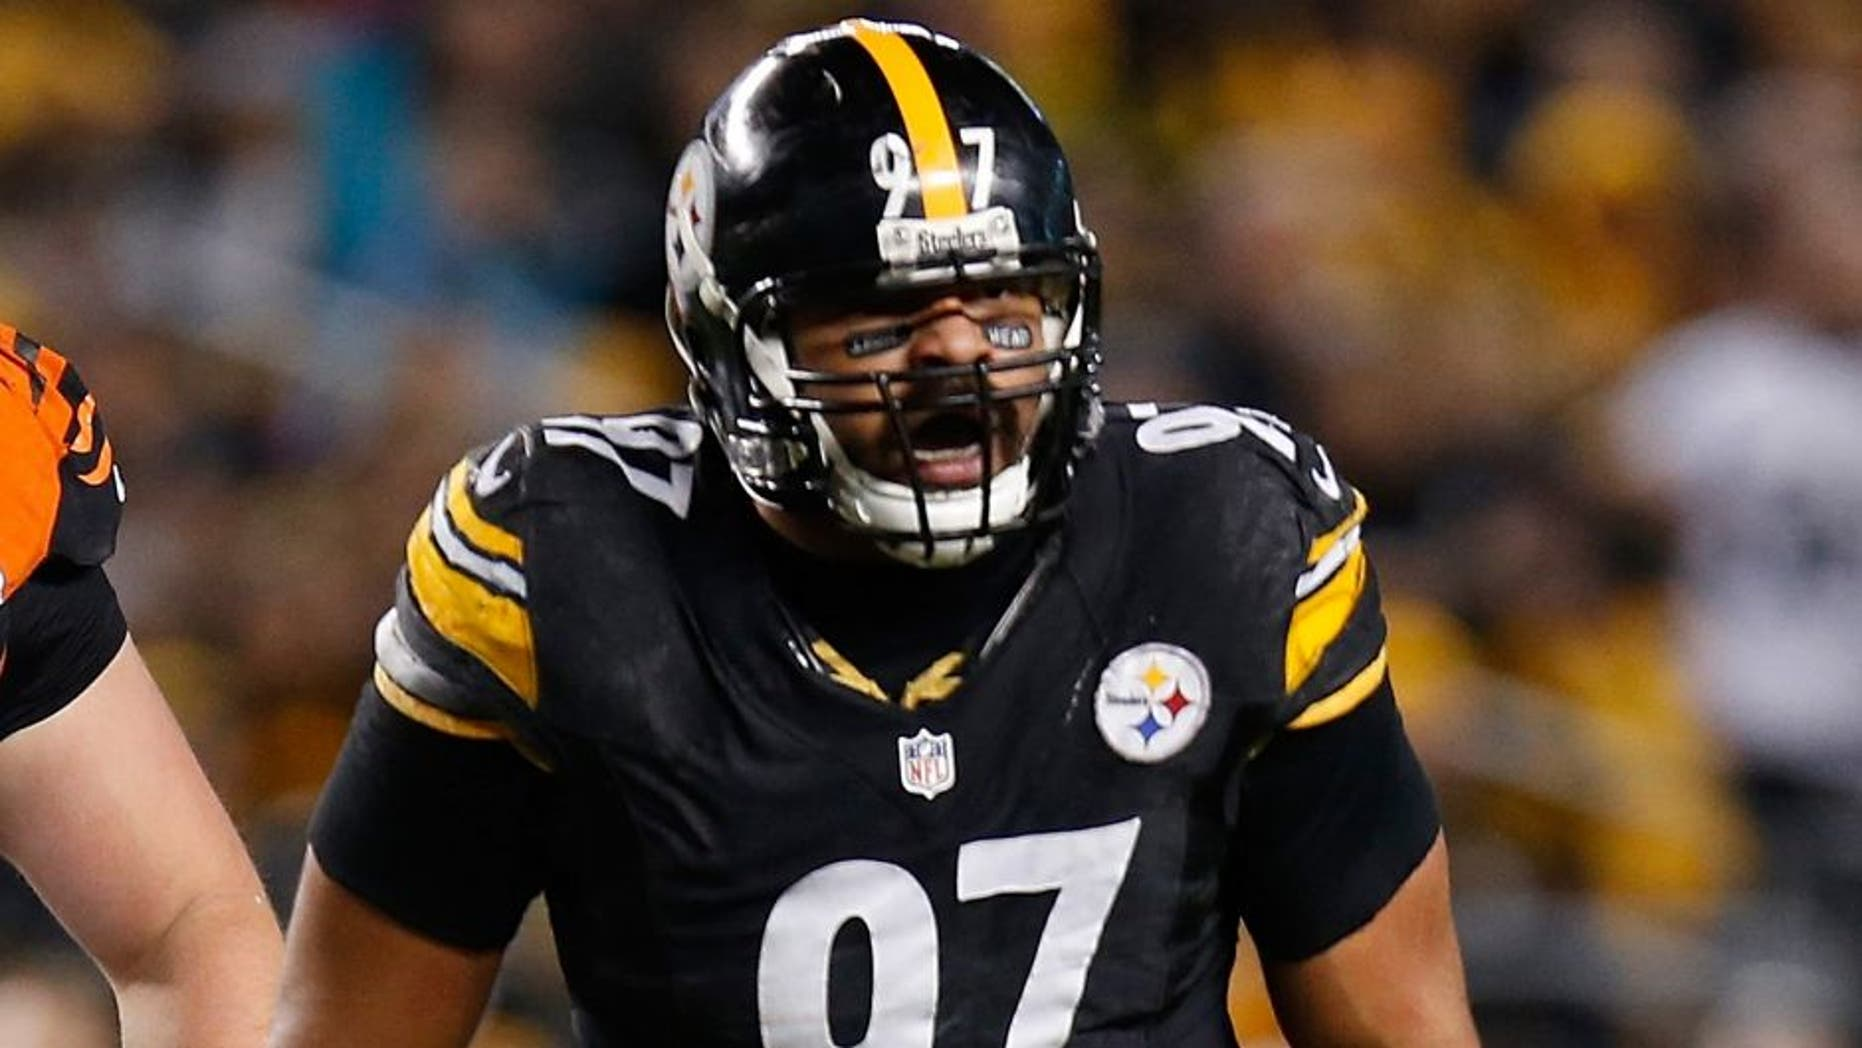 PITTSBURGH, PA - DECEMBER 28: Cameron Heyward #97 of the Pittsburgh Steelers reacts after sacking Andy Dalton #14 of the Cincinnati Bengals during the second quarter at Heinz Field on December 28, 2014 in Pittsburgh, Pennsylvania. (Photo by Gregory Shamus/Getty Images)